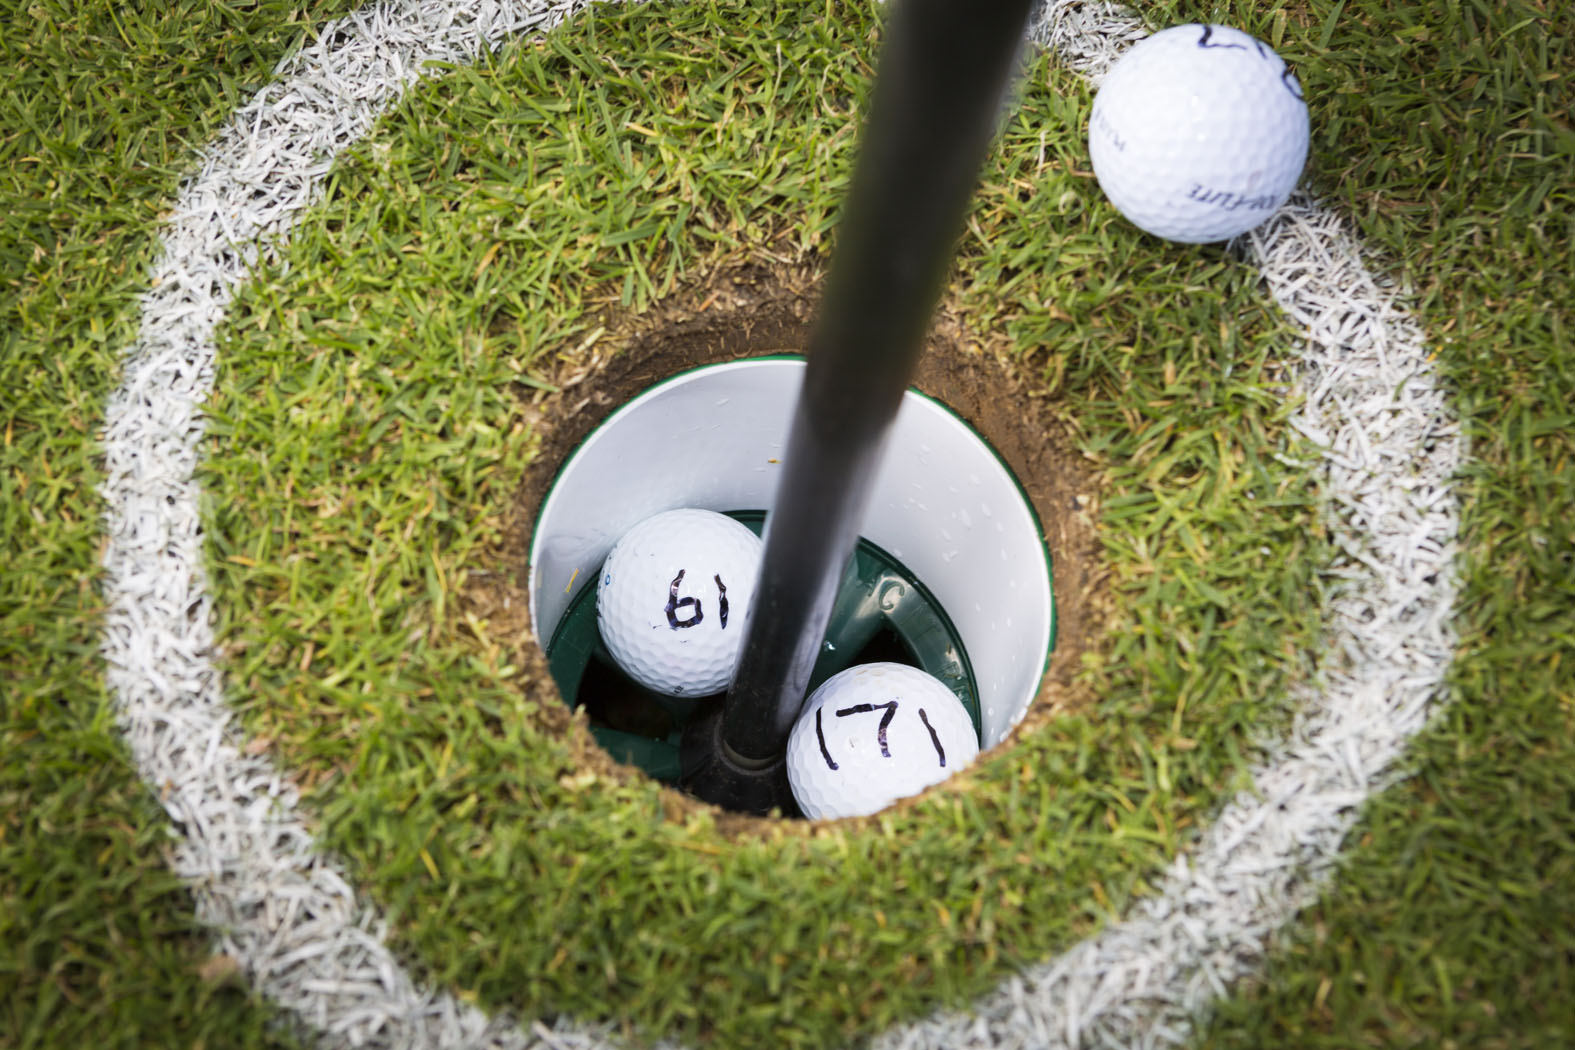 GOLF: Hole-in-one for Murray